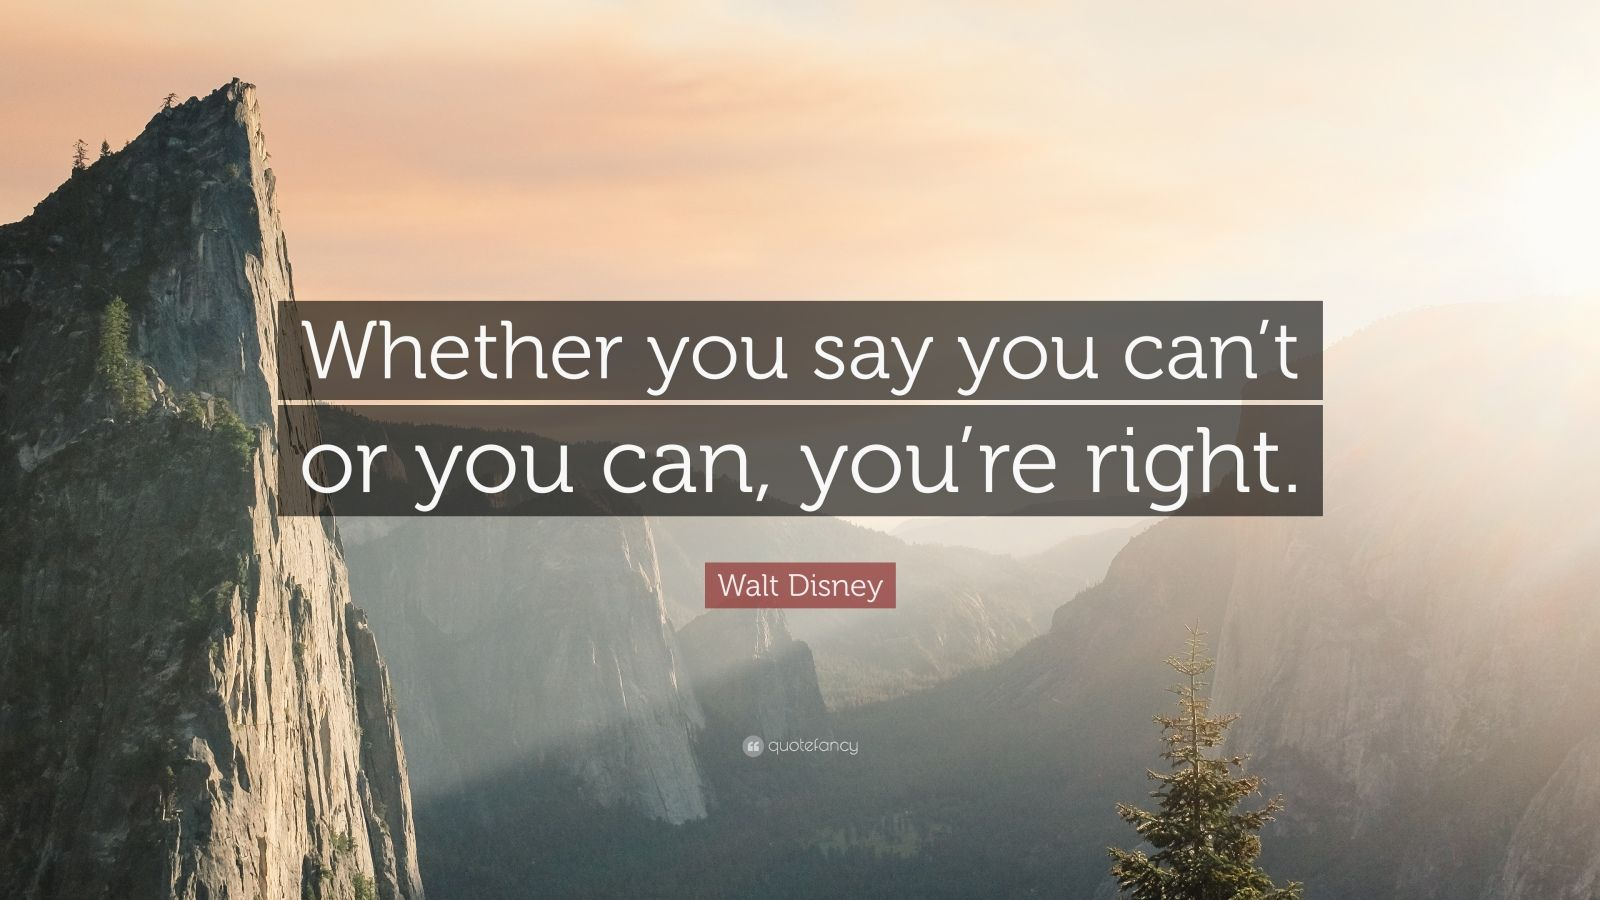 """Walt Disney Quote: """"Whether you say you can't or you can, you're right."""""""